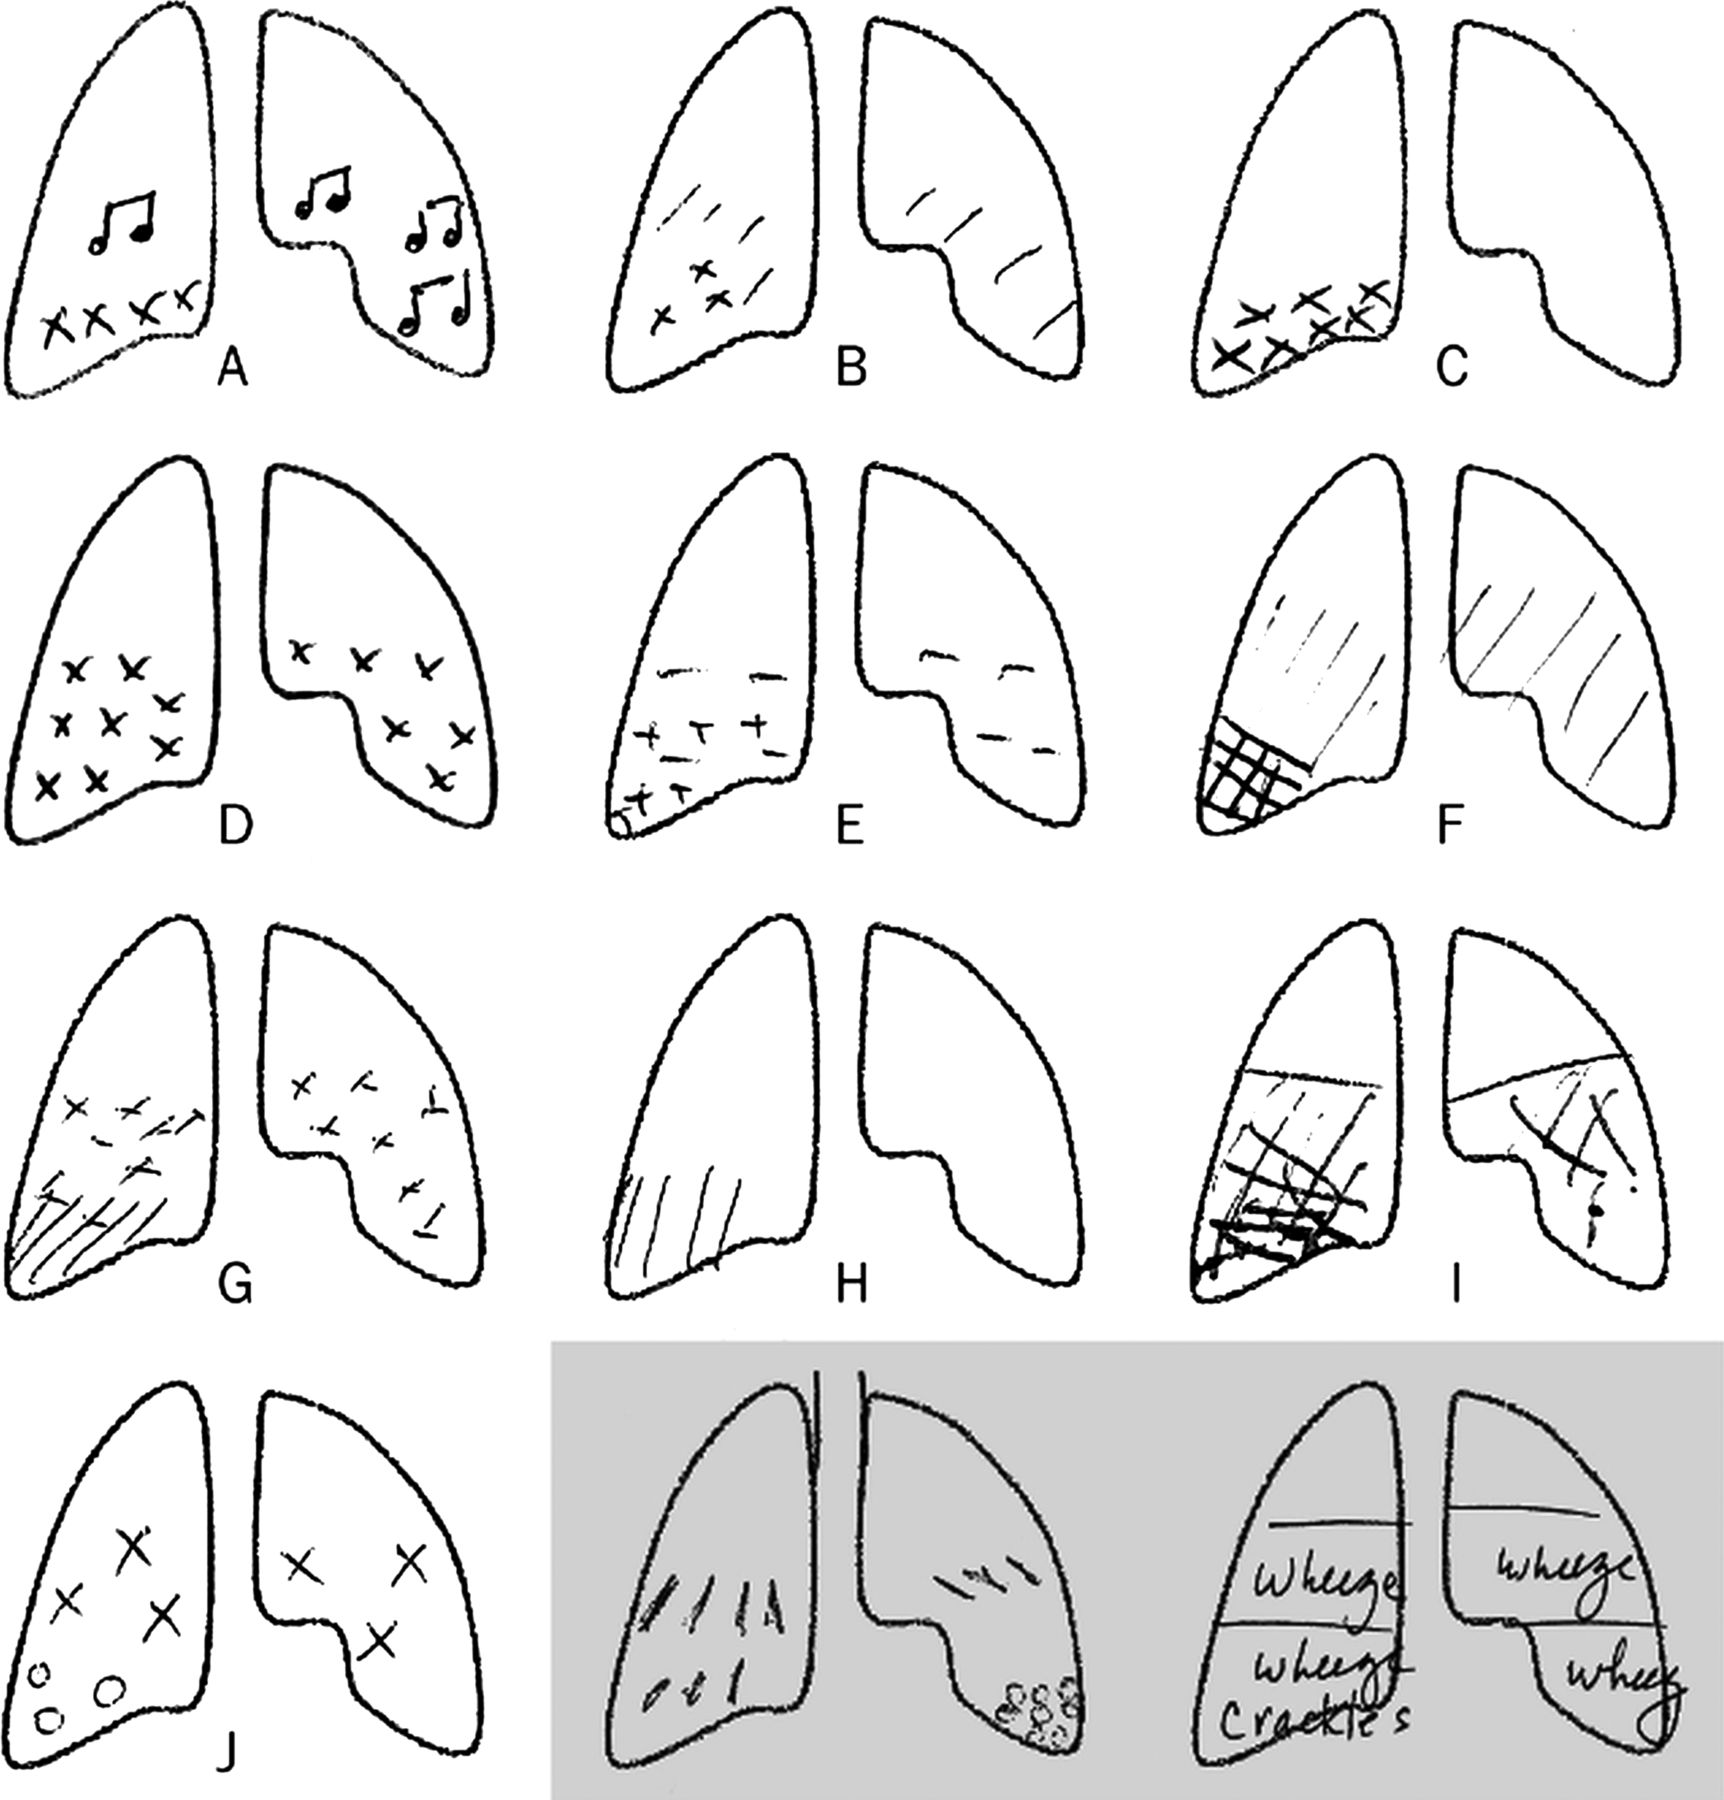 Lung Sounds How Doctors Draw Crackles And Wheeze